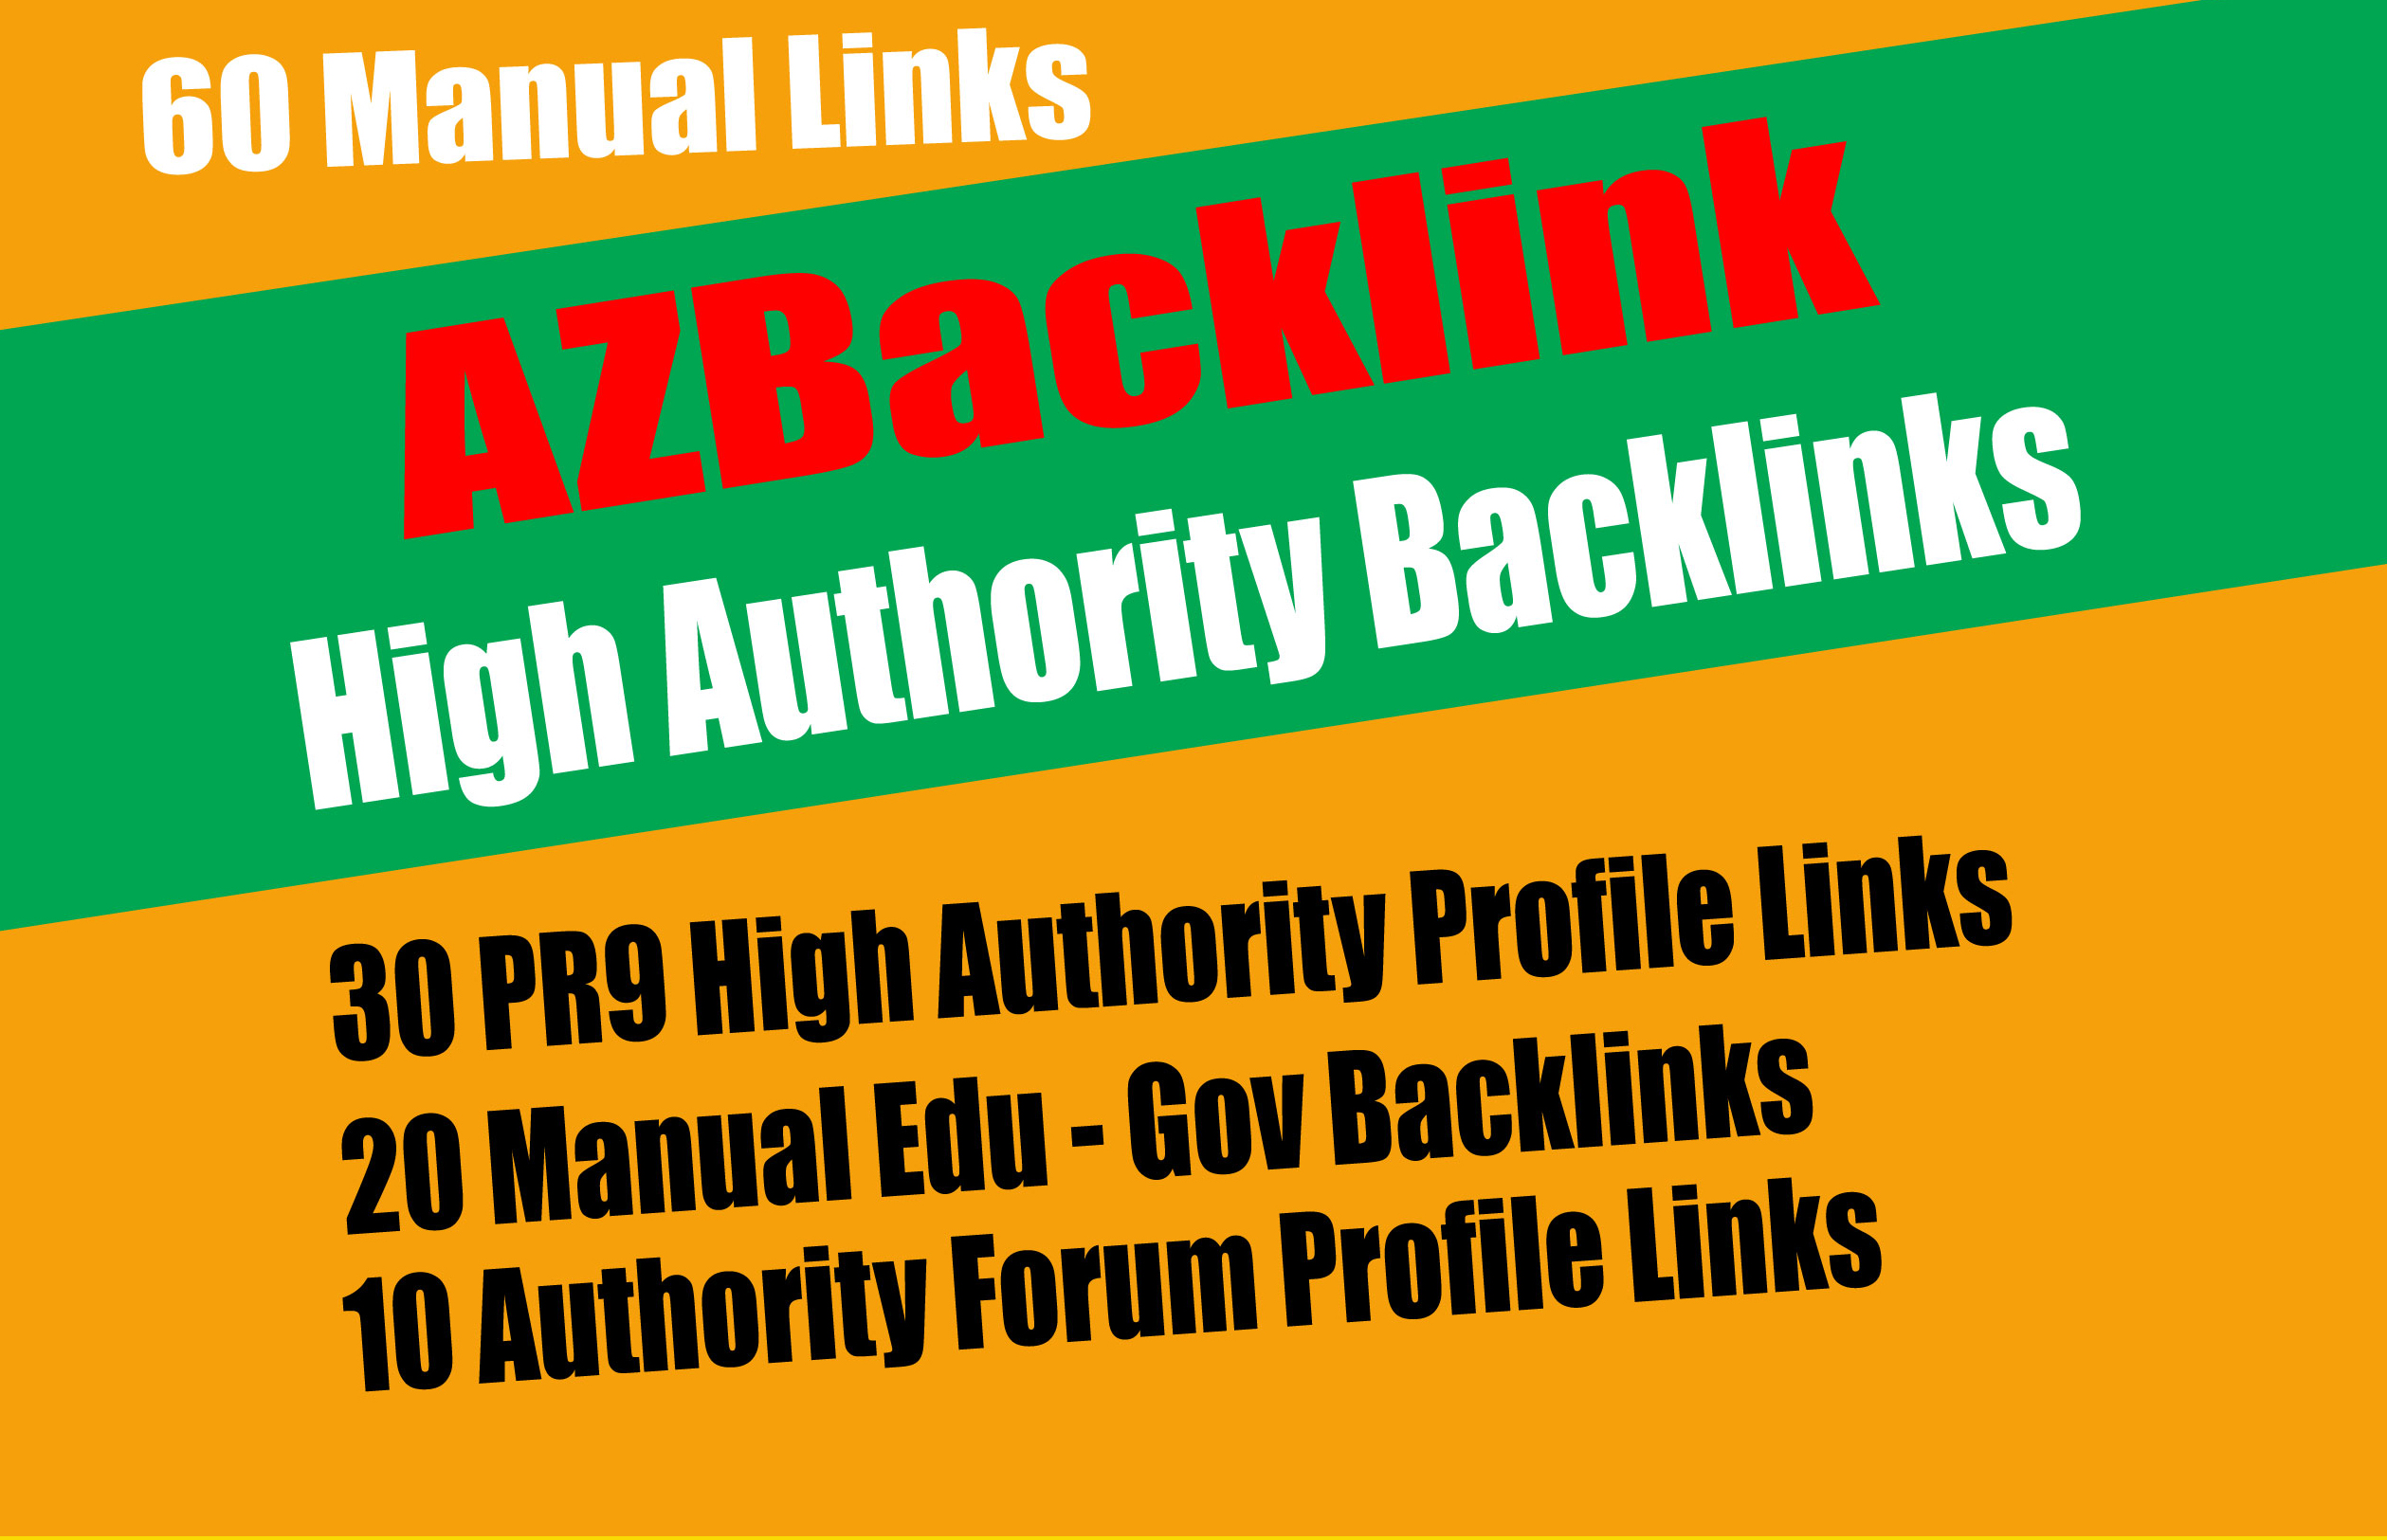 60 Authority Backlinks From 30 HQ Profile + 20 Edu-Gov Profile + 10 Forum Profile Links